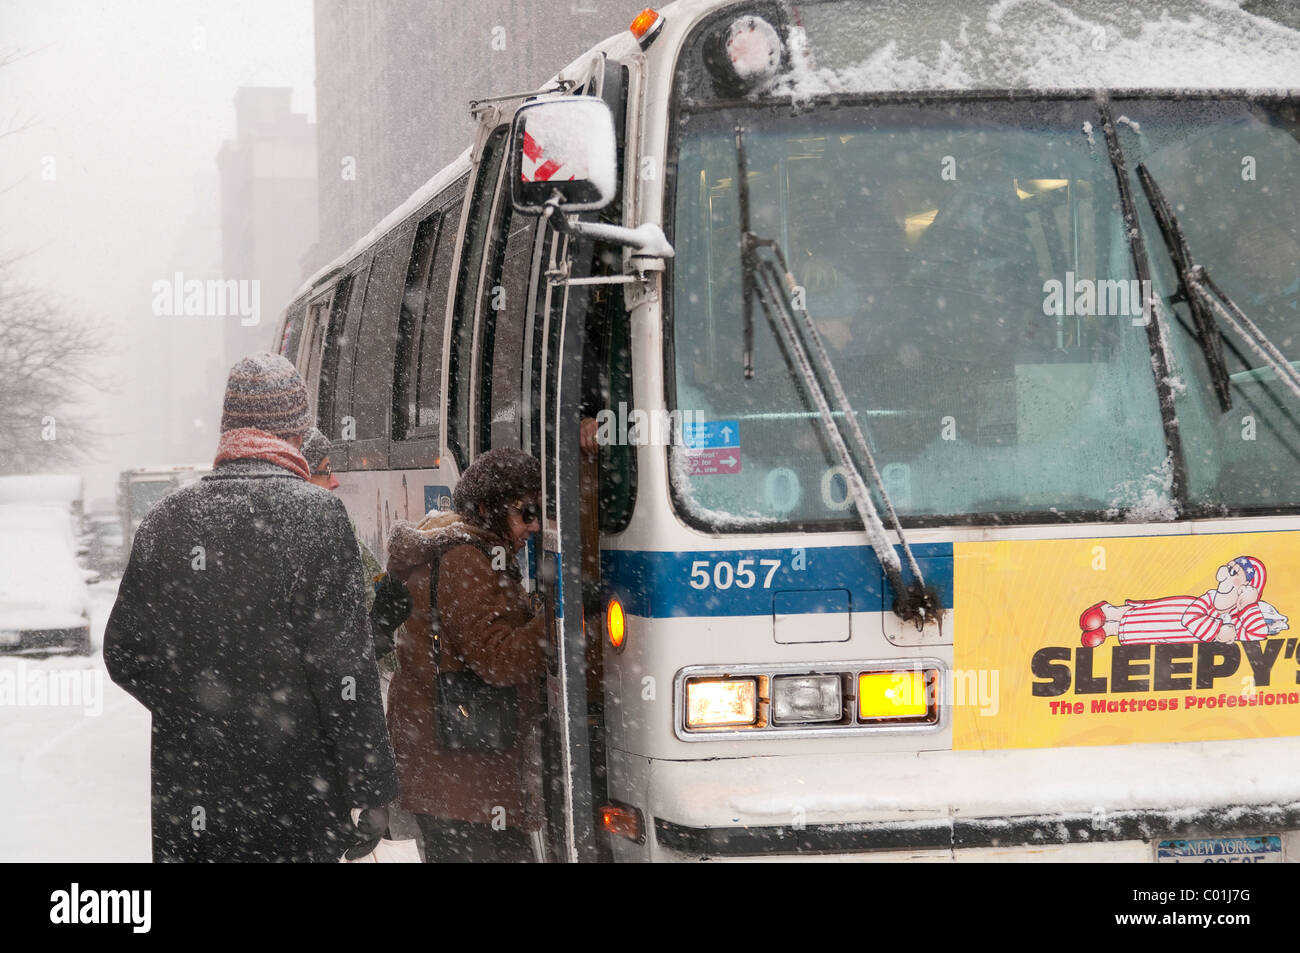 Mta Bus New York Stock Photos Mta Bus New York Stock Images Alamy